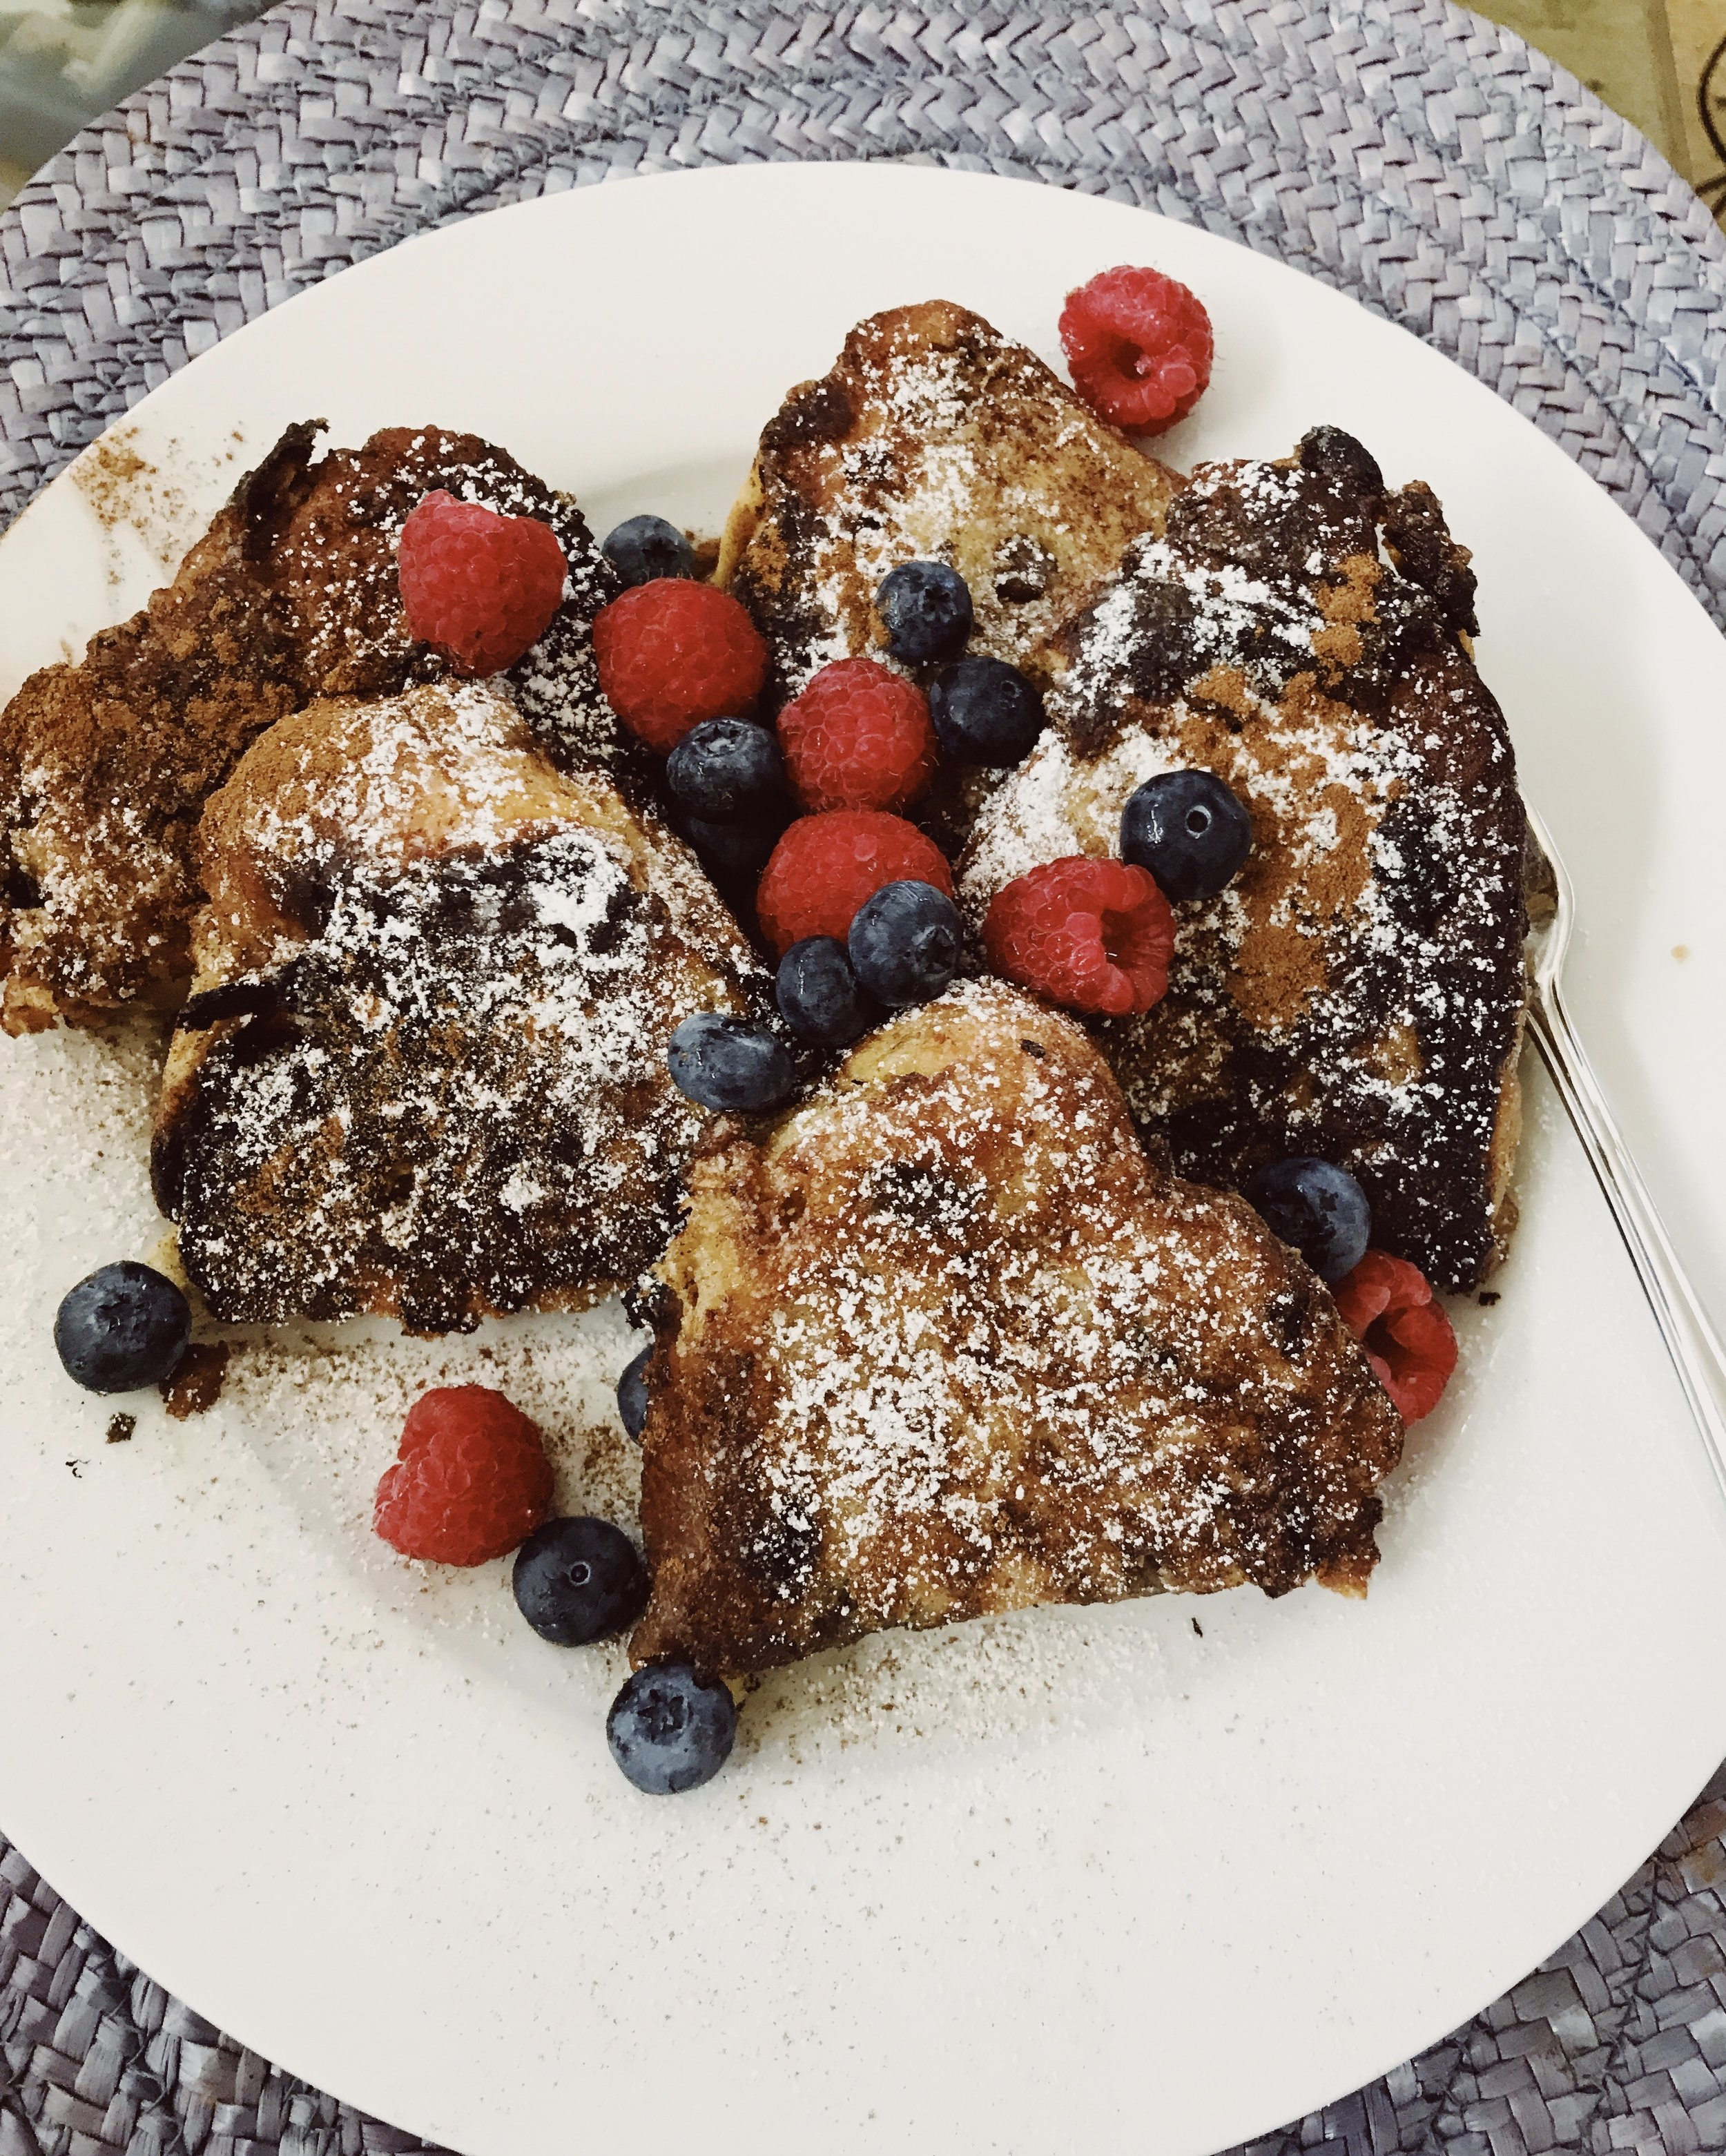 Raisin bread french toast with berries! -